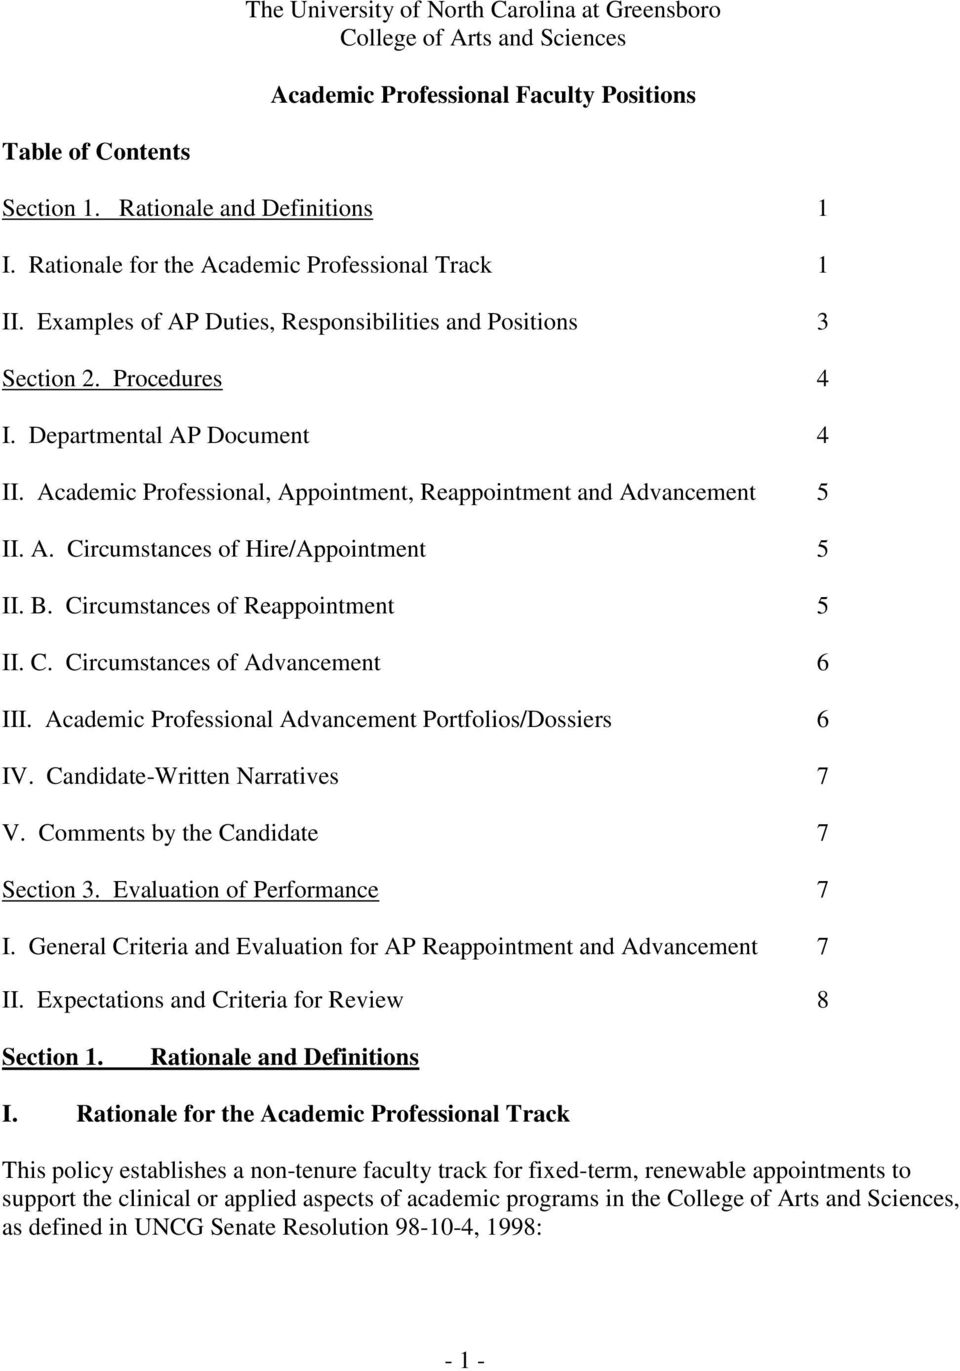 Academic Professional, Appointment, Reappointment and Advancement 5 II. A. Circumstances of Hire/Appointment 5 II. B. Circumstances of Reappointment 5 II. C. Circumstances of Advancement 6 III.